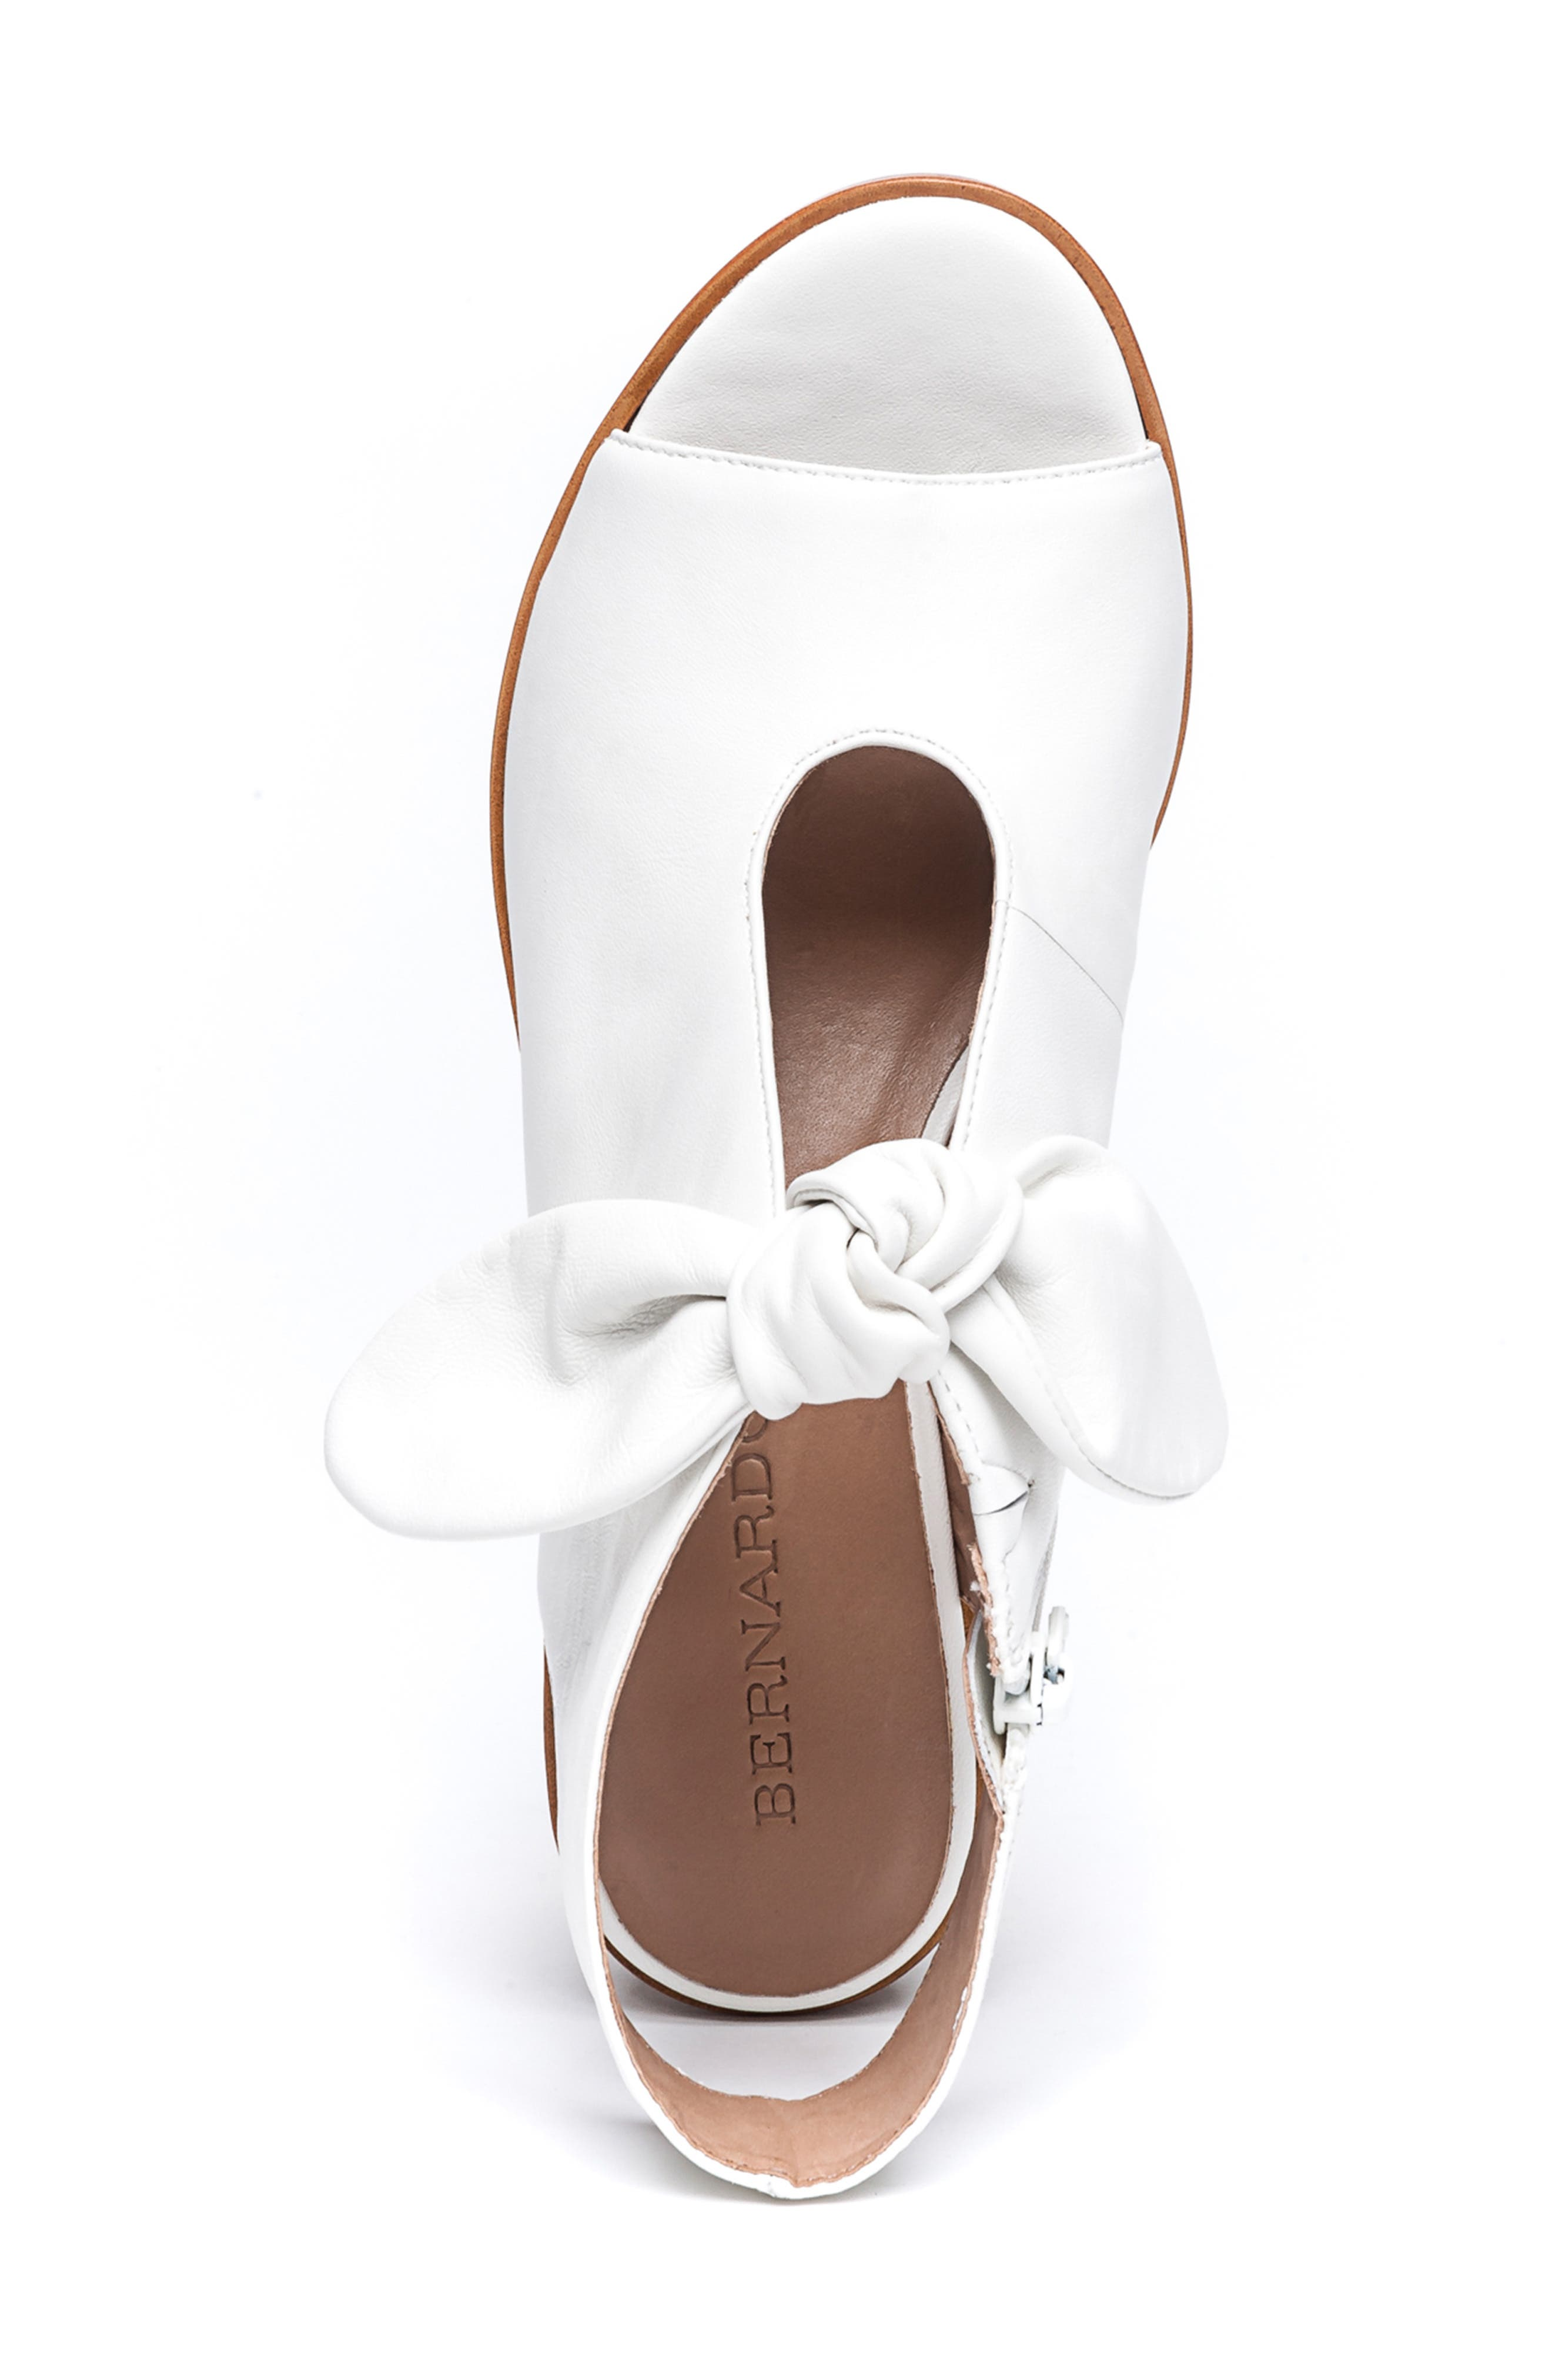 Bernardo Luna Sandal,                             Alternate thumbnail 5, color,                             WHITE LEATHER